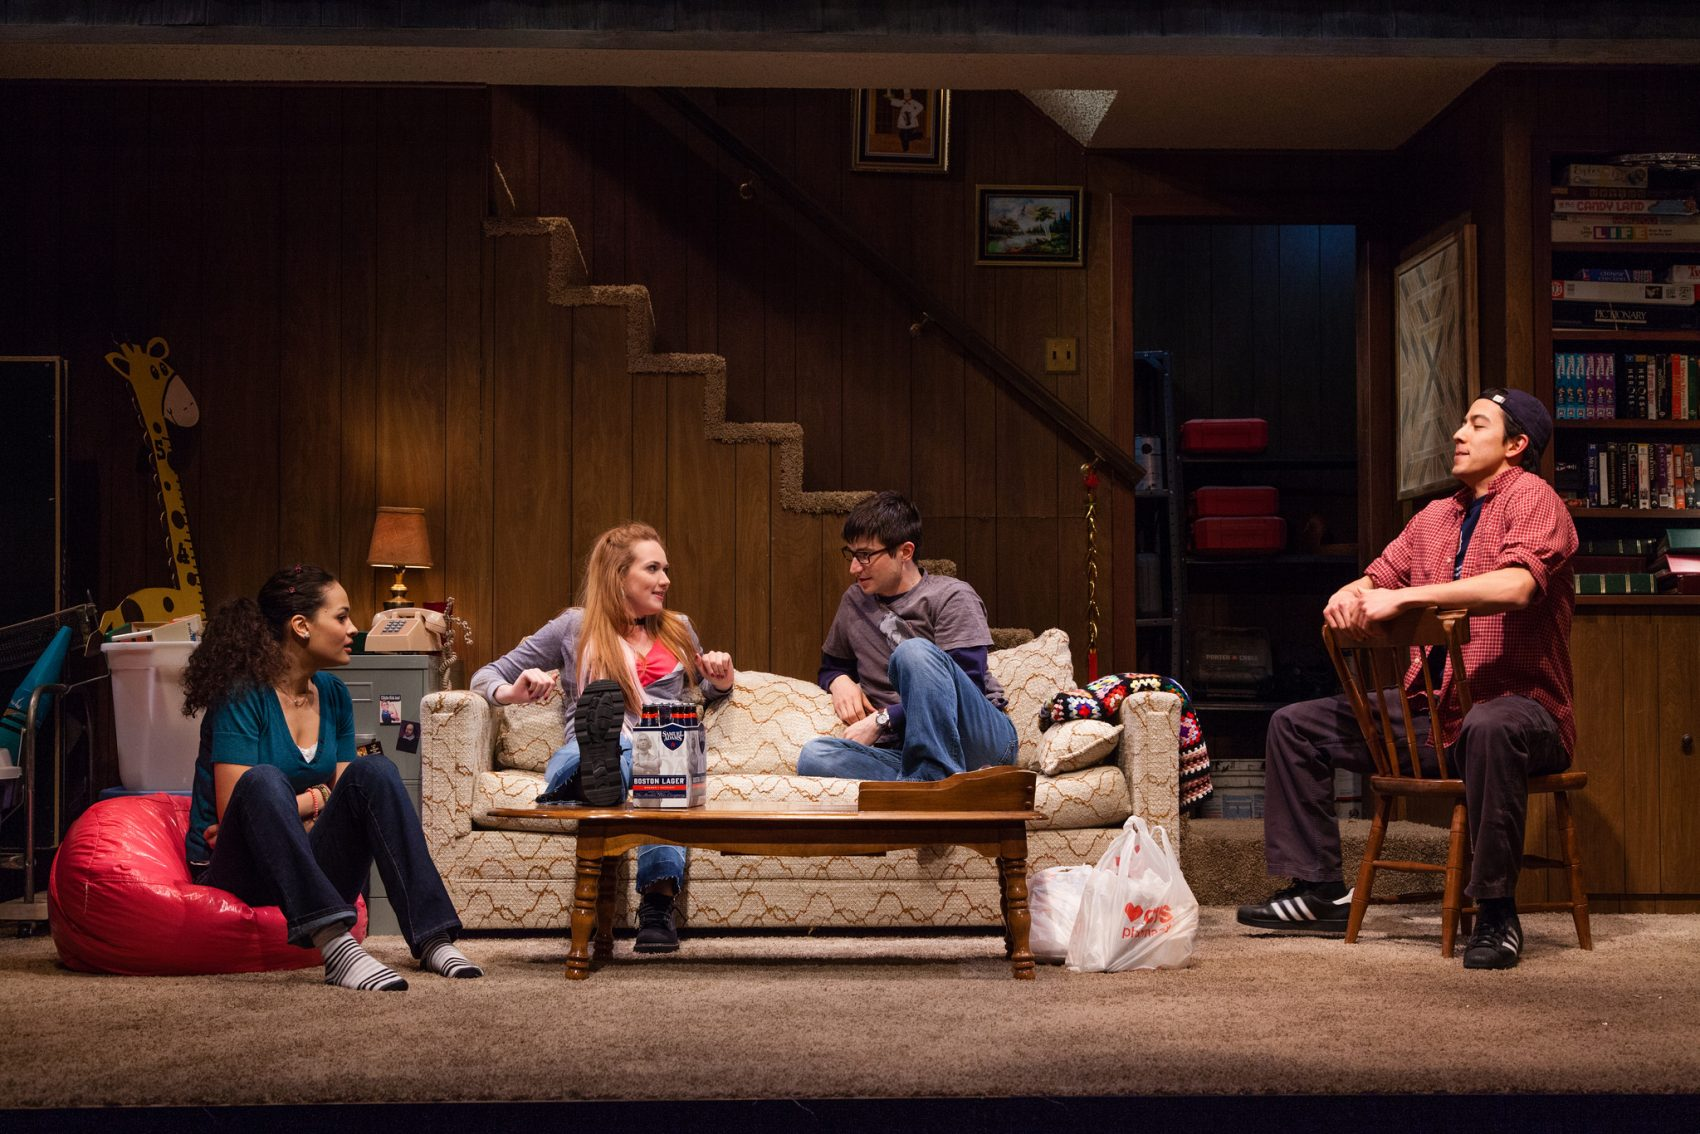 Maria Jung, Monica Giordano, Danny Bryck and Kim Fischer. (Courtesy Meghan Moore/Merrimack Repertory Theatre)